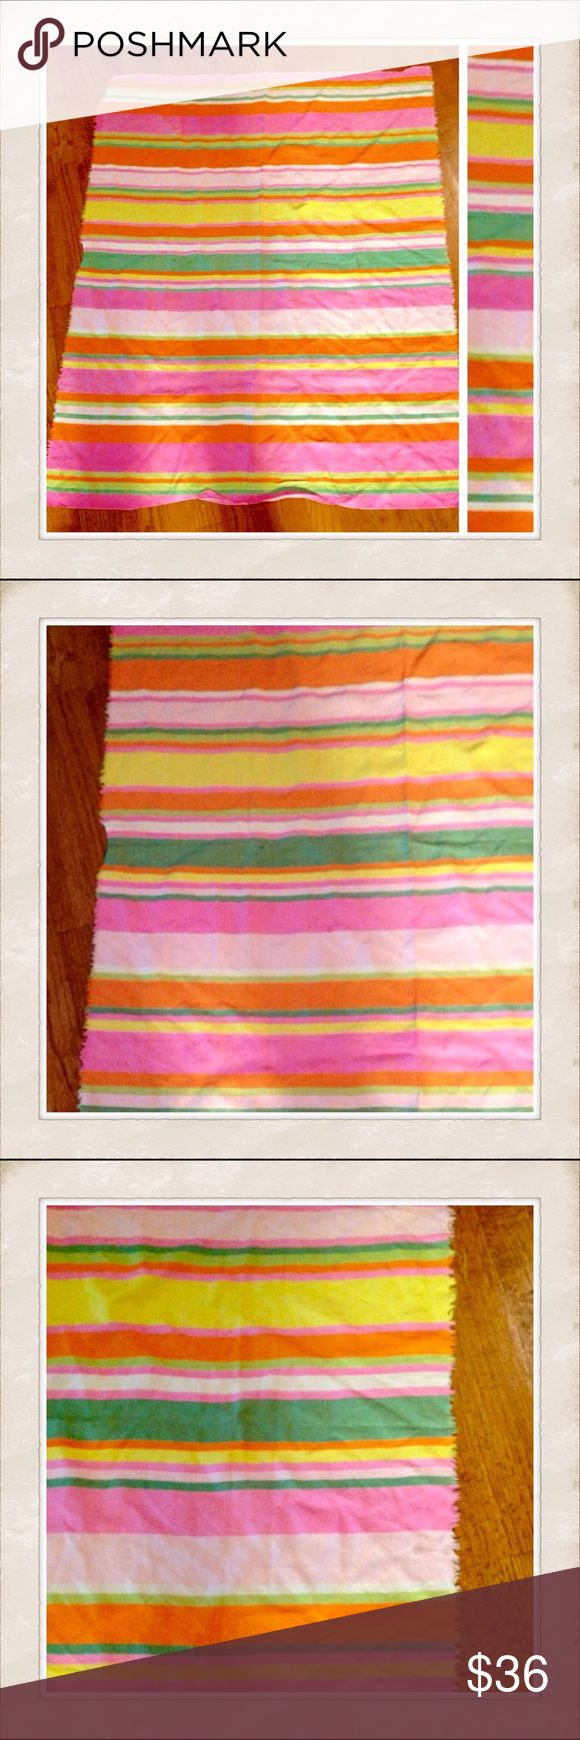 "Huge Colorful Scarf, Wrap, Shaw, Vintage Wrap This can be used as a wrap, shaw of large scarf    In great condition    No tags but it's very soft and on the thicker side. Like a summer wrap would be.     Approx measurements 42""x35"" Vintage Accessories Scarves & Wraps"